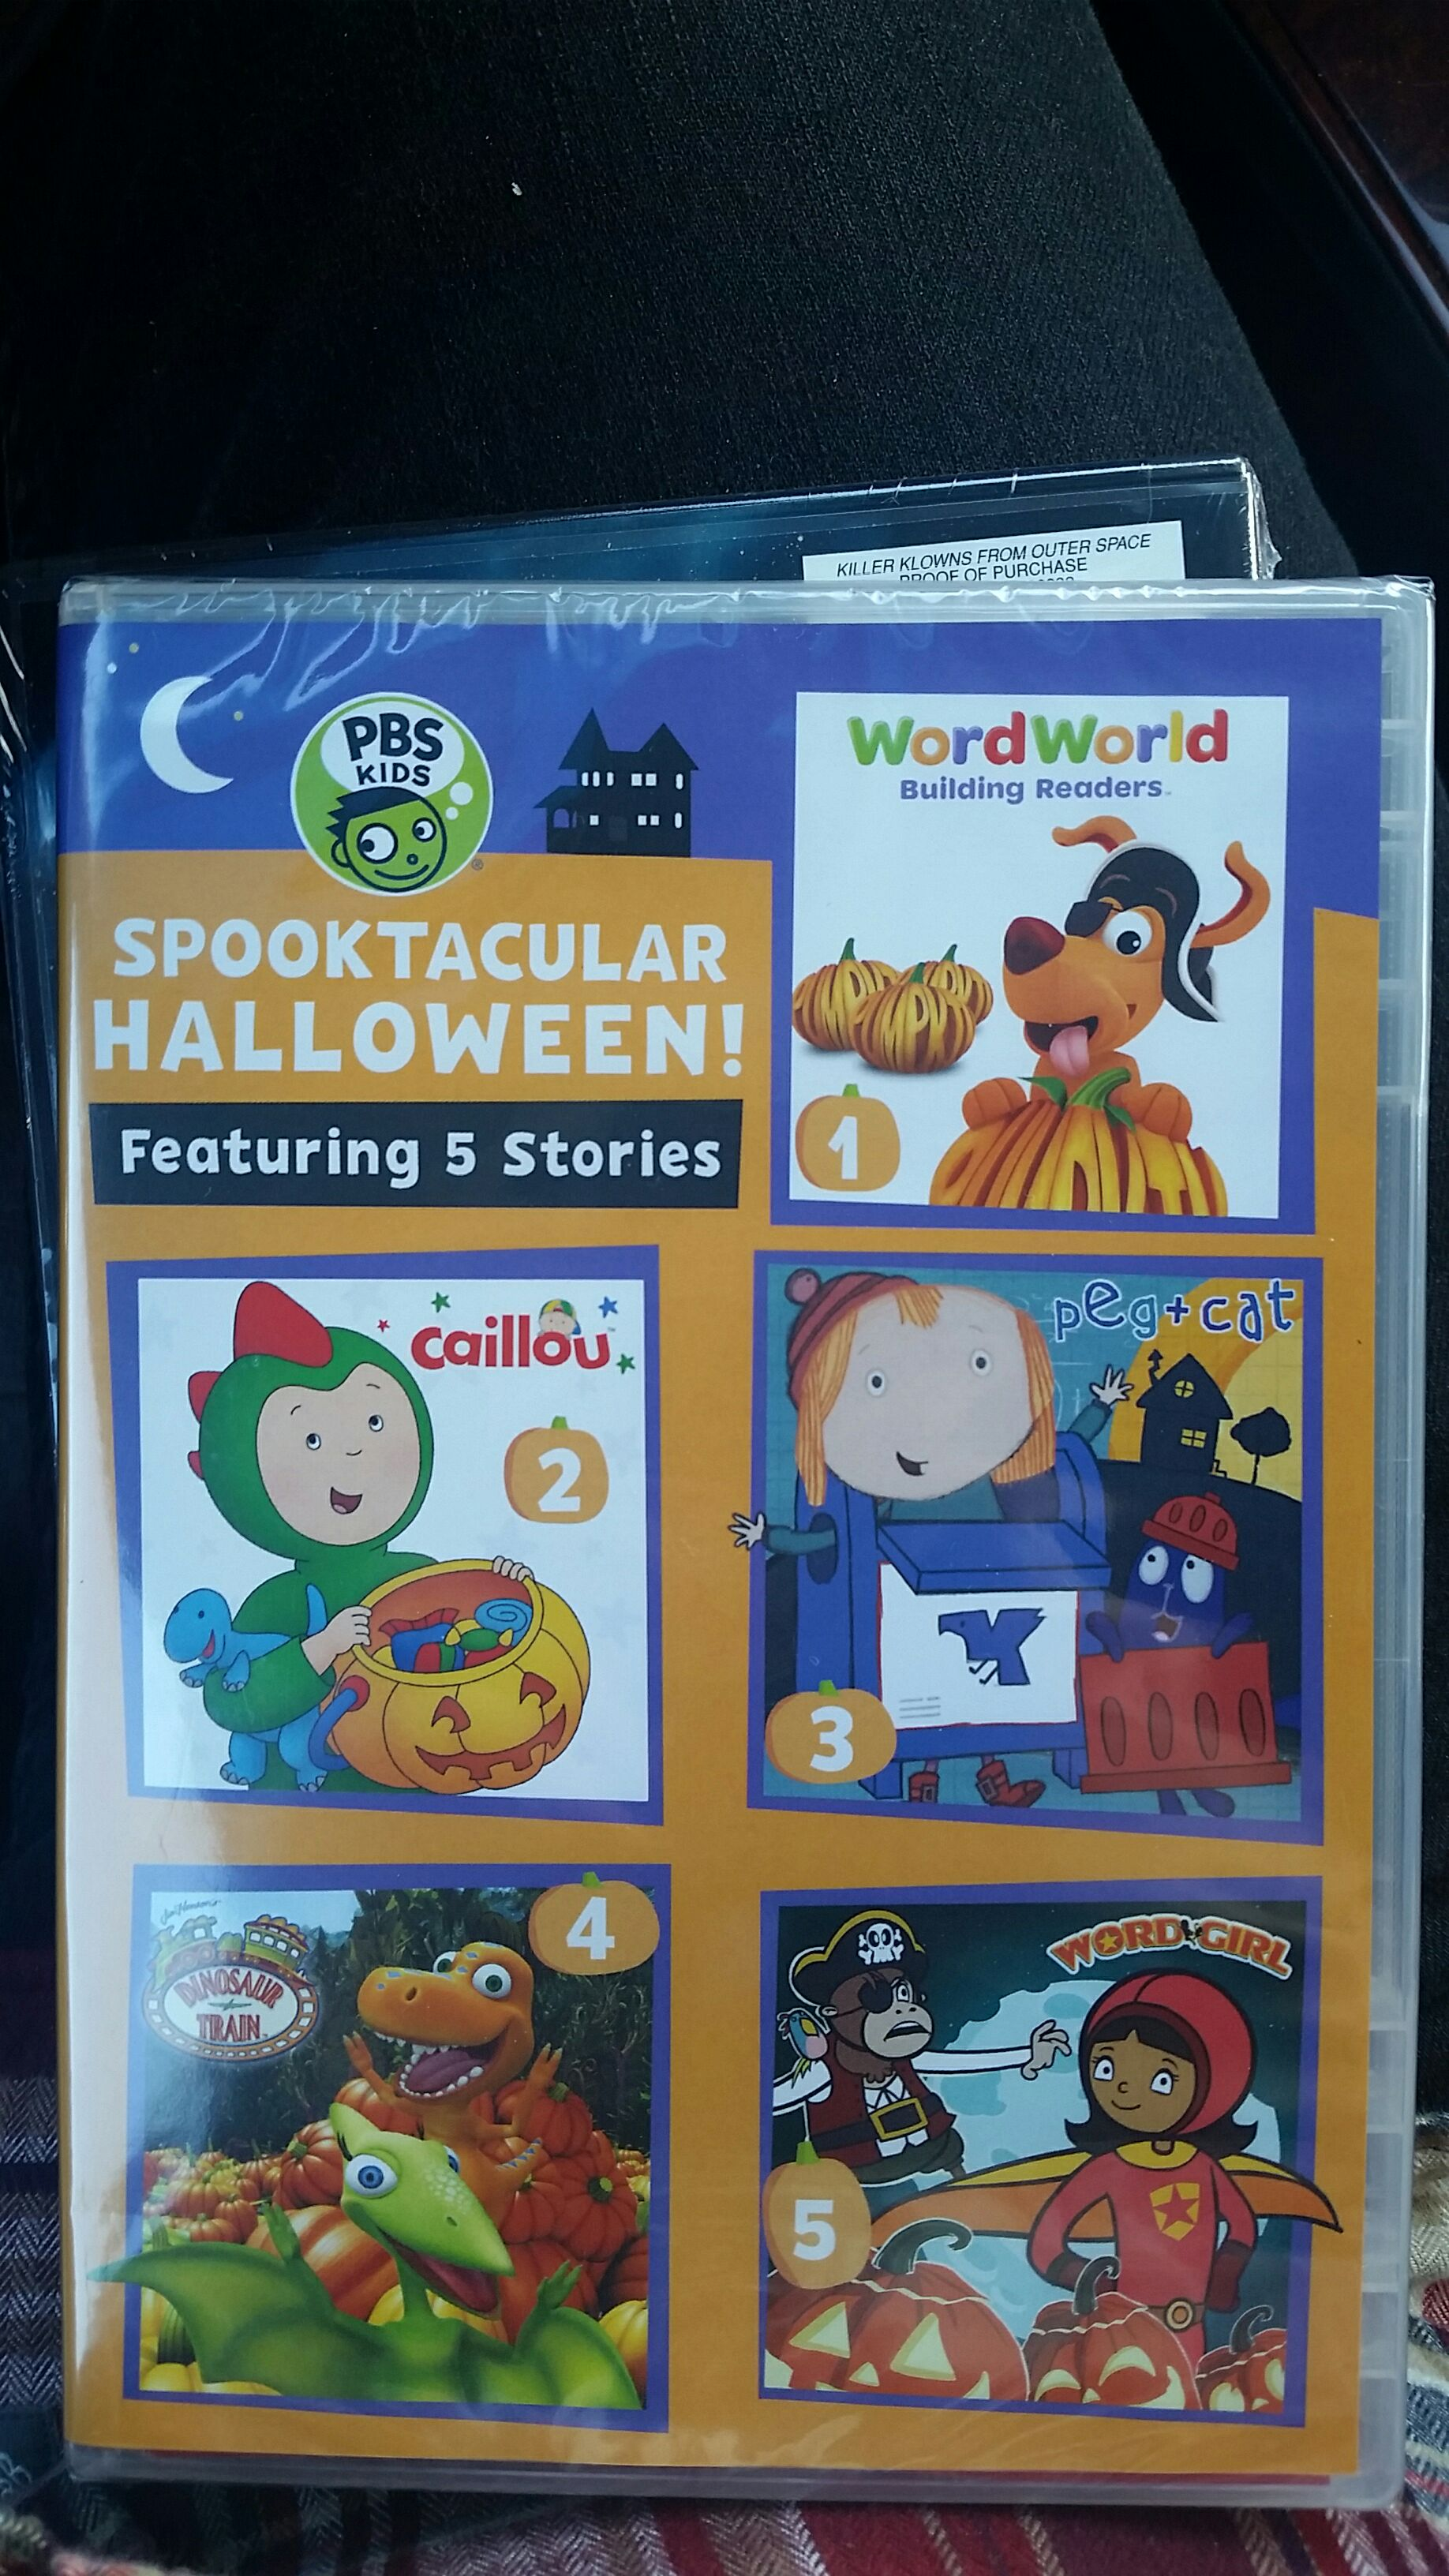 Pbs Kids Halloween Dvd.Pbs Kids Spooktacular Halloween Movie Dvd From Sort It Apps